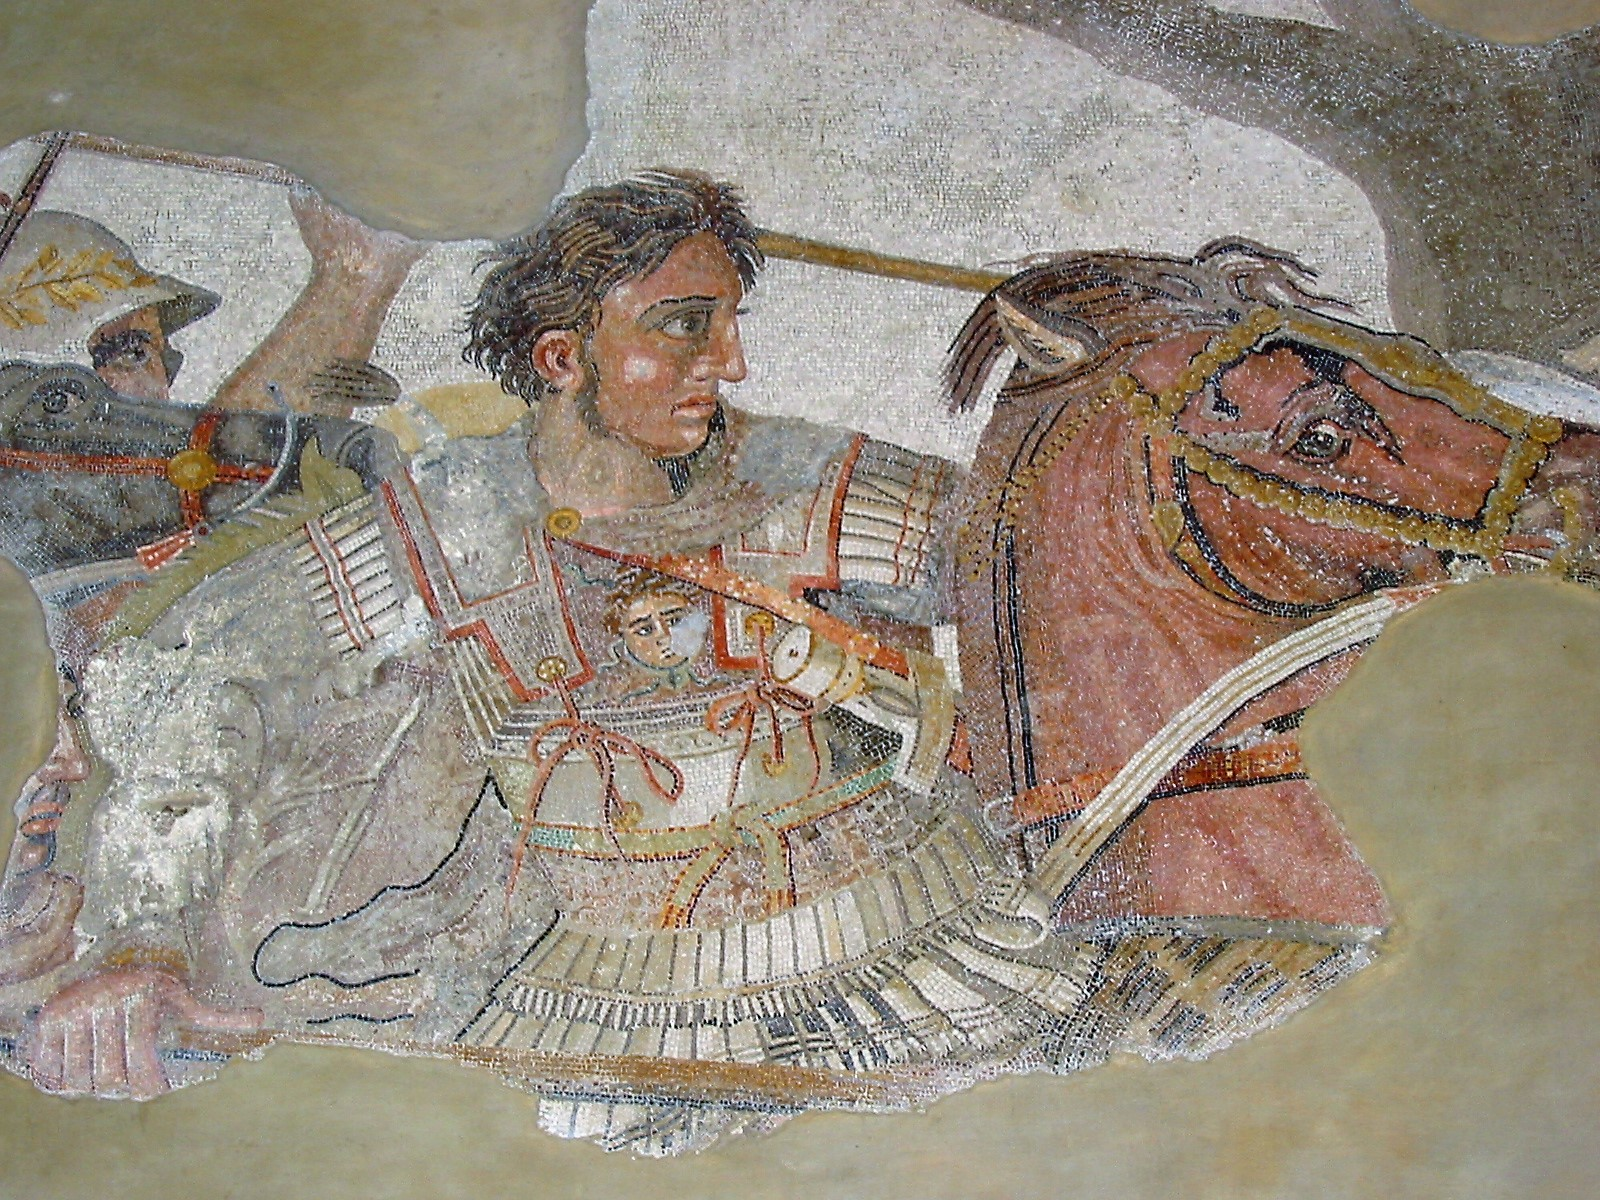 Battle_of_Issus_mosaic_-_Museo_Archeologico_Nazionale_-_Naples-detail-alexandre.